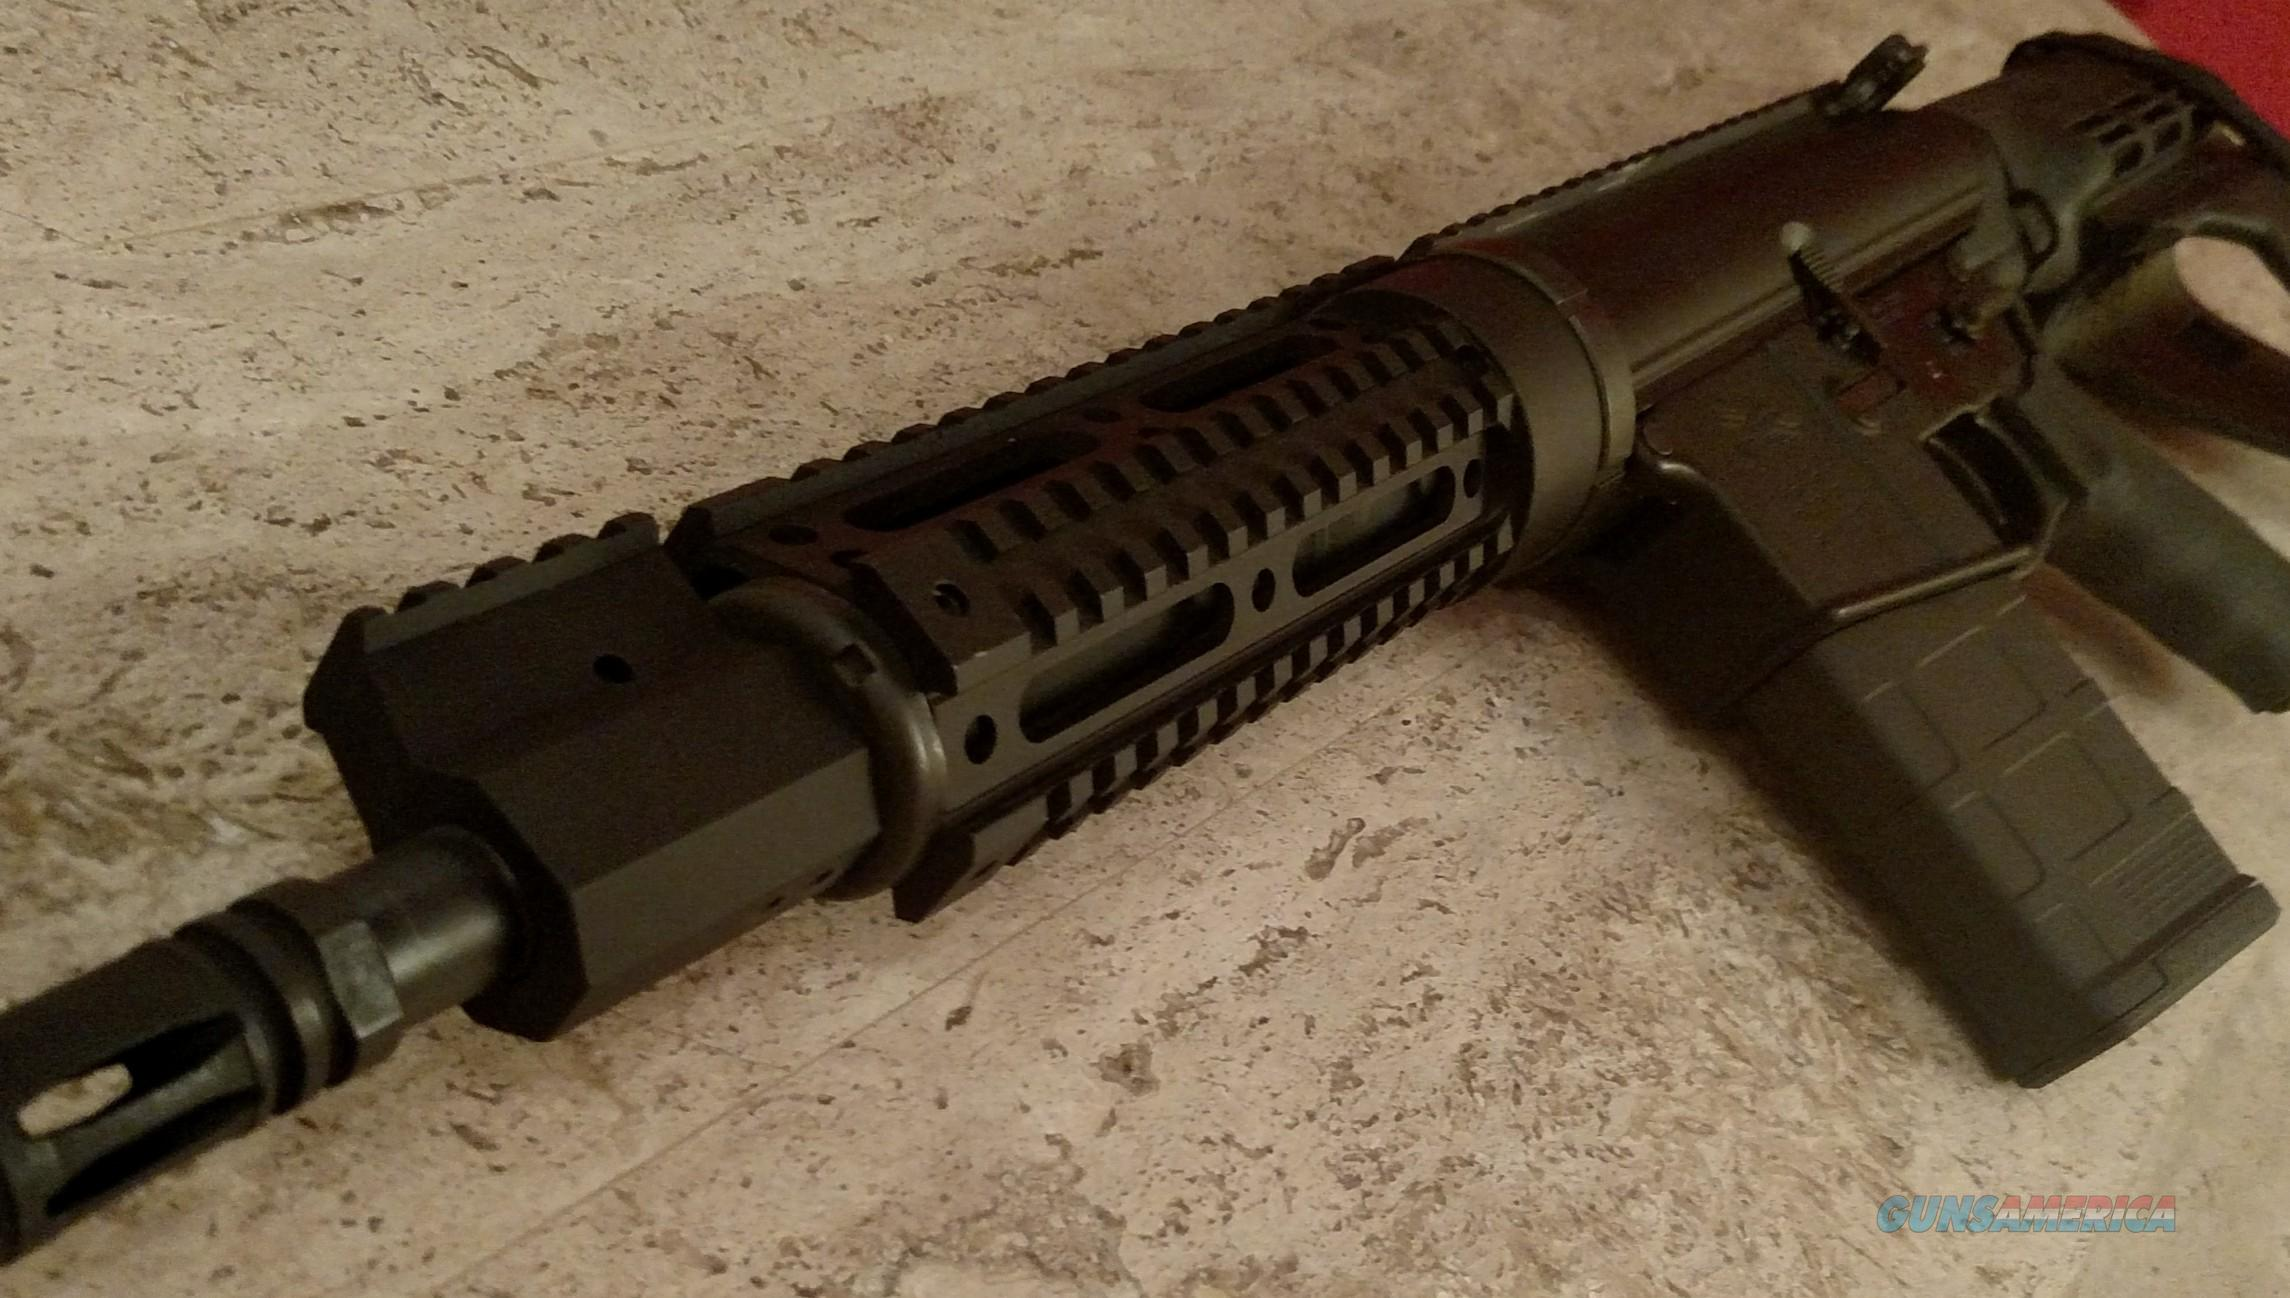 DPMS LR AR .308 UPPER AND PSA PISTOL LOWER WITH SIG SAUER ARM BRACE/BUTTSTOCK $675.00 OBO  Guns > Pistols > A Misc Pistols